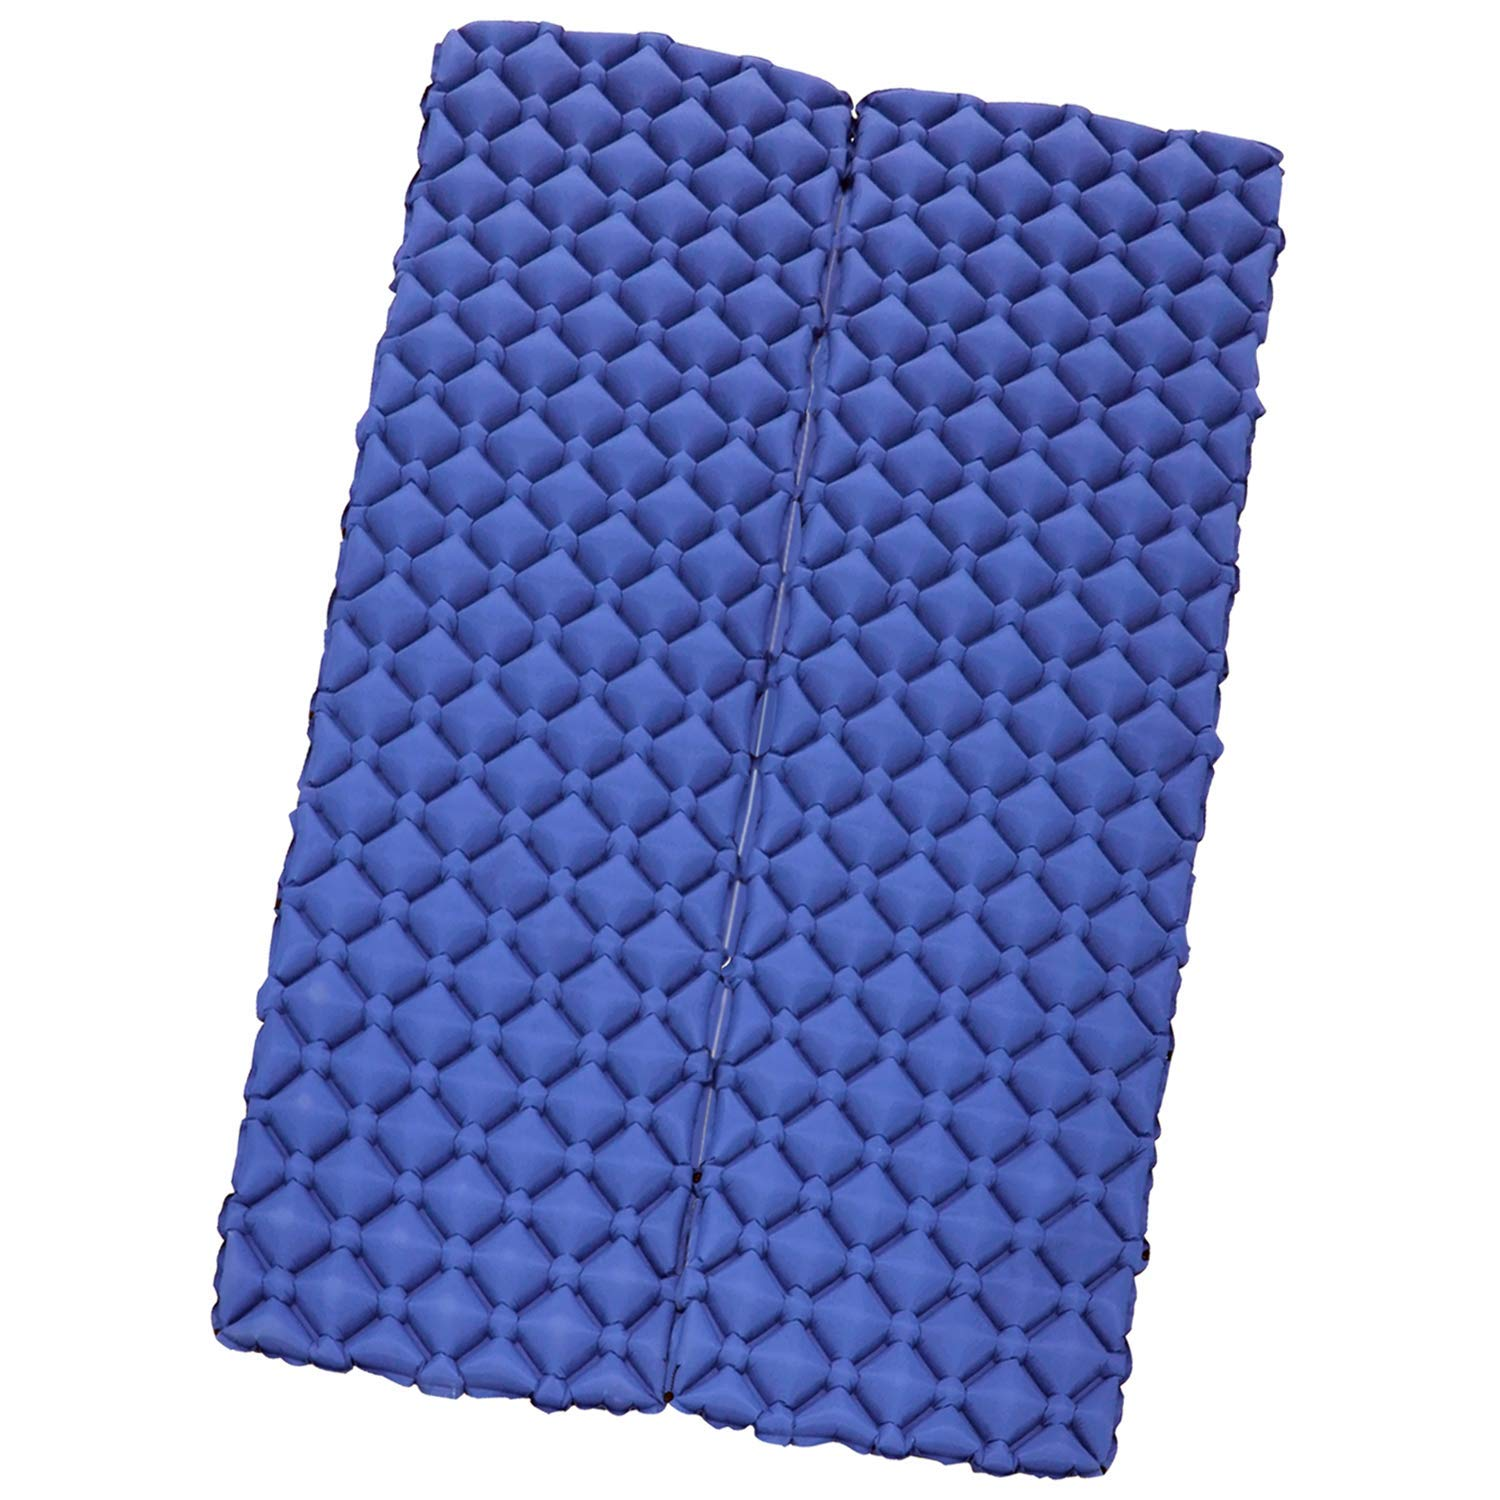 Camping Sleeping Pad for 2 Person - Inflatable Sleeping Pad, Ultralight Sleeping Mat Come with Connect Buckles, Ultralight Air Sleeping Pad, Folding Camping Mat for Outdoor Backpacking Travel